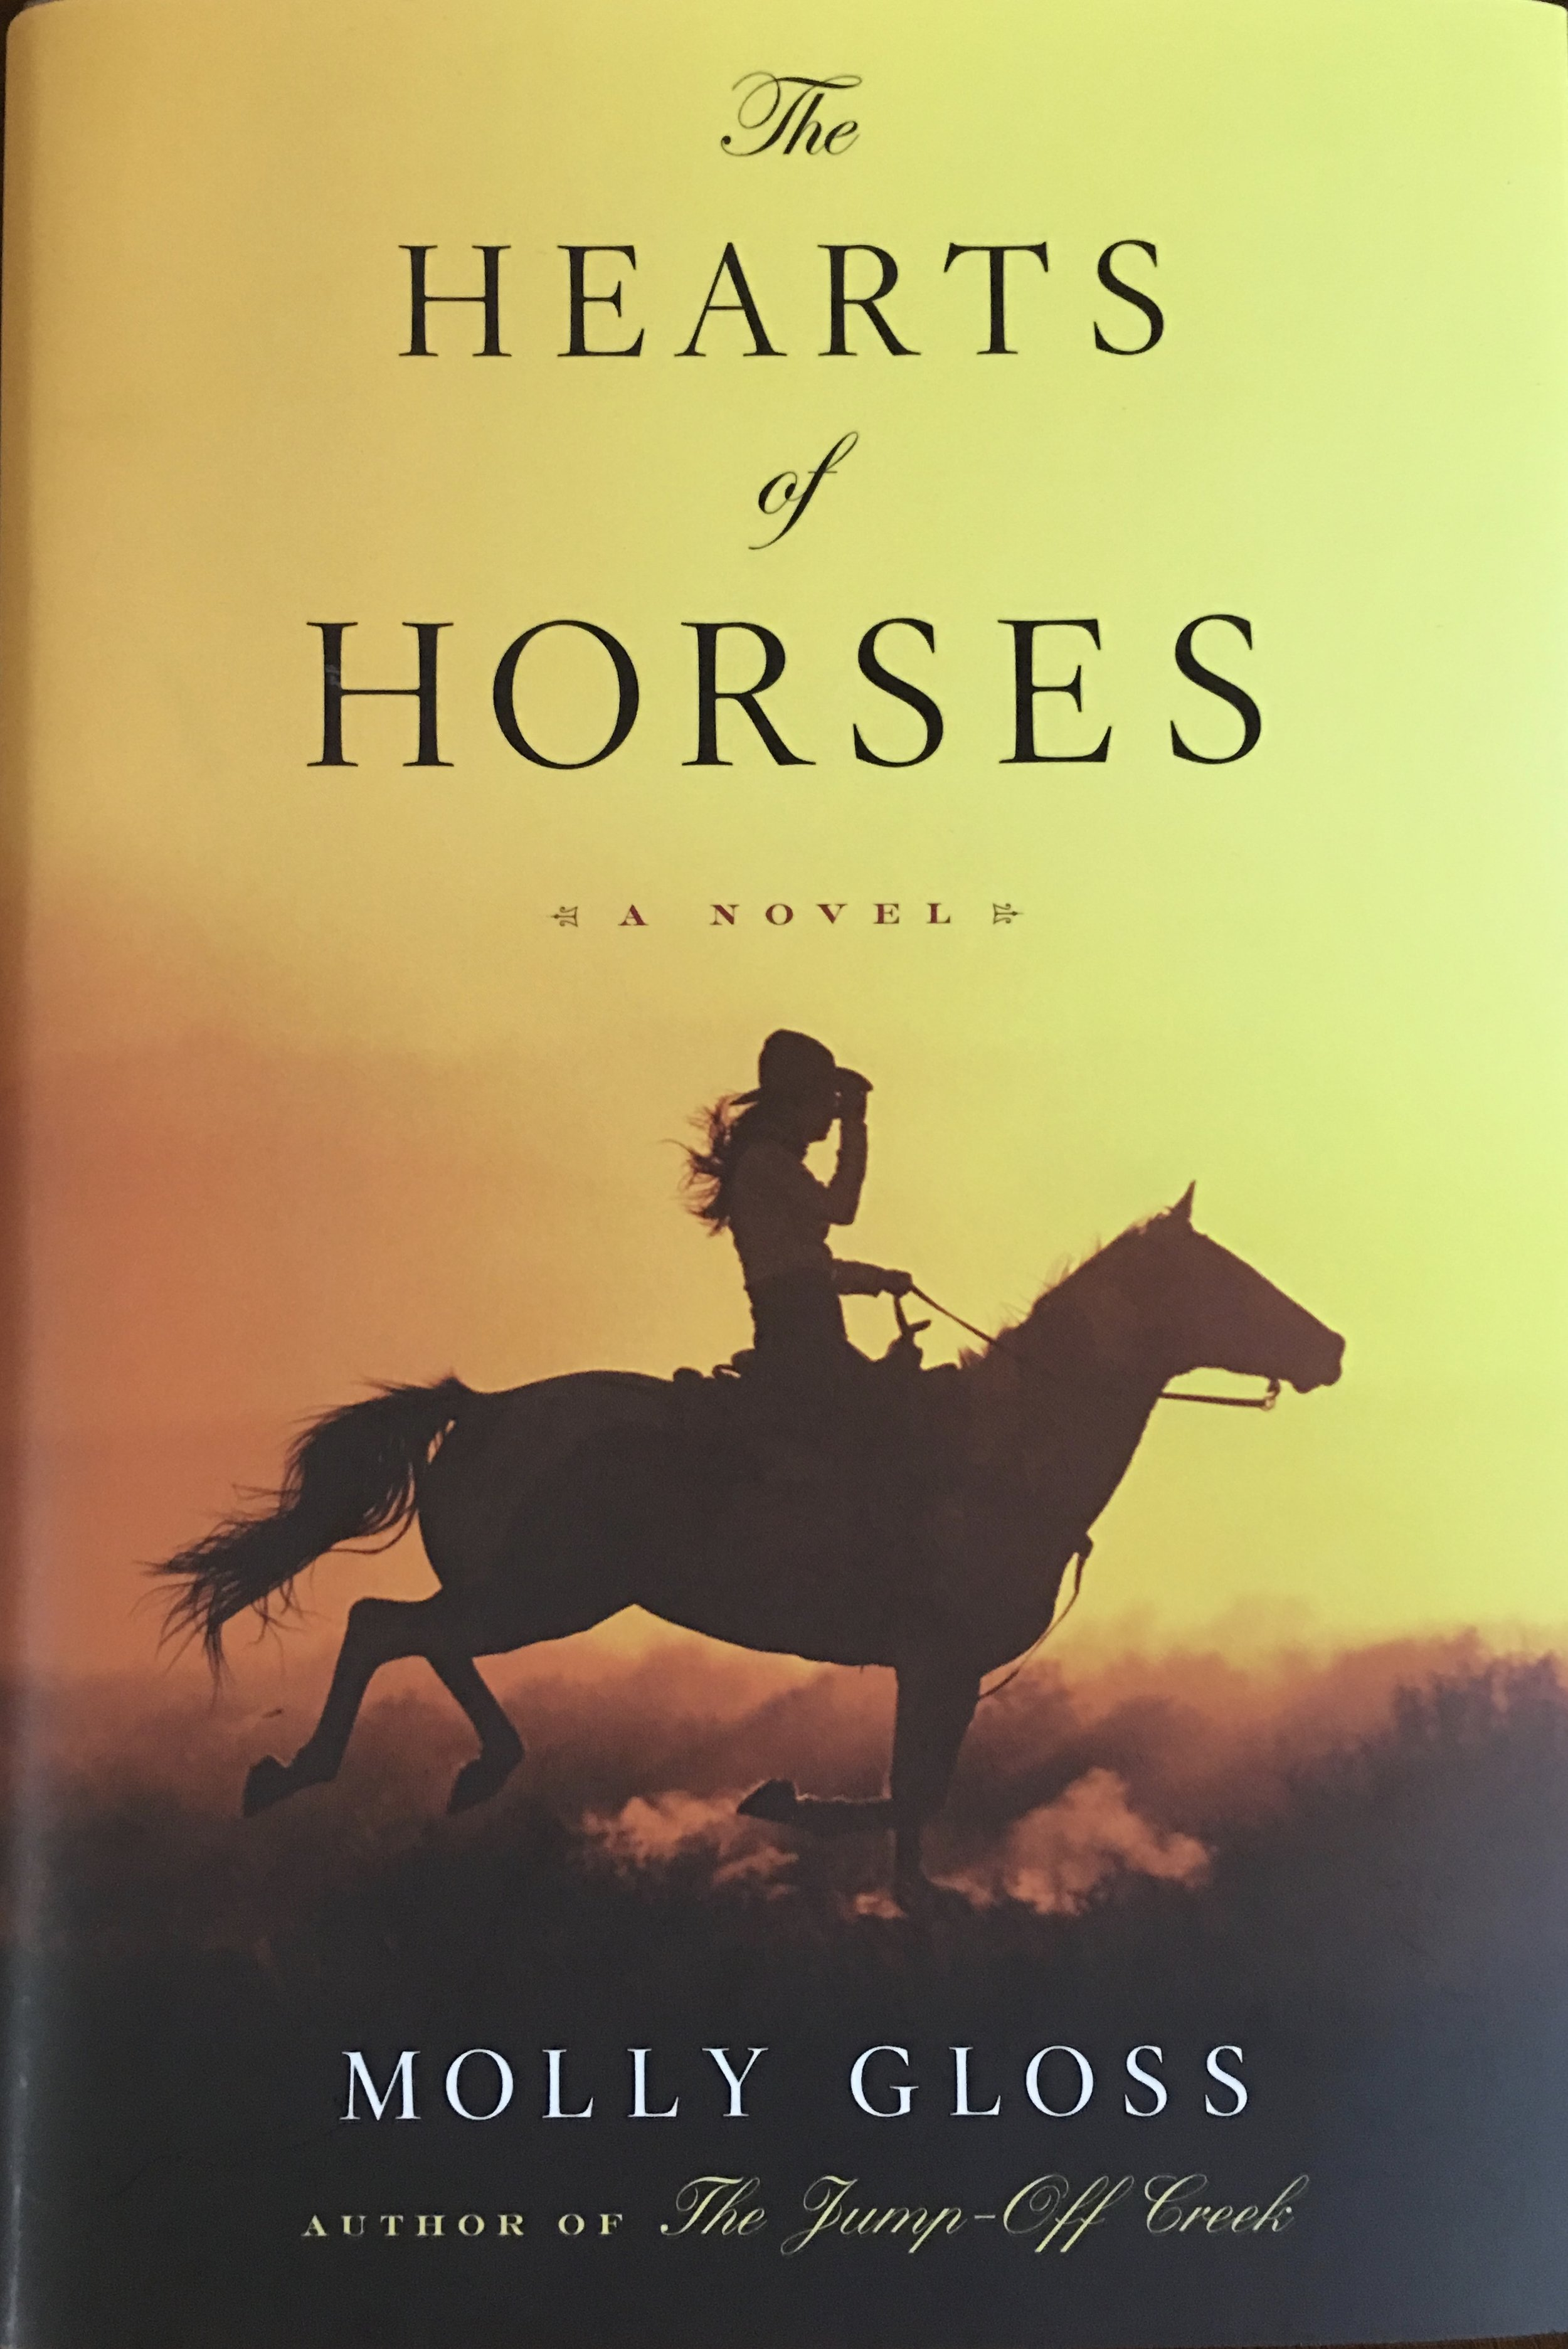 "In the winter of 1917, Martha Lessen takes work breaking horses for several farmers and ranchers in a remote county of eastern Oregon. As she rides a circuit from one ranch to the next, she is drawn inexorably into the lives of her neighbors, and the embrace of community. ""There isn't a false move in this poignant novel"" —Washington Post Book World"